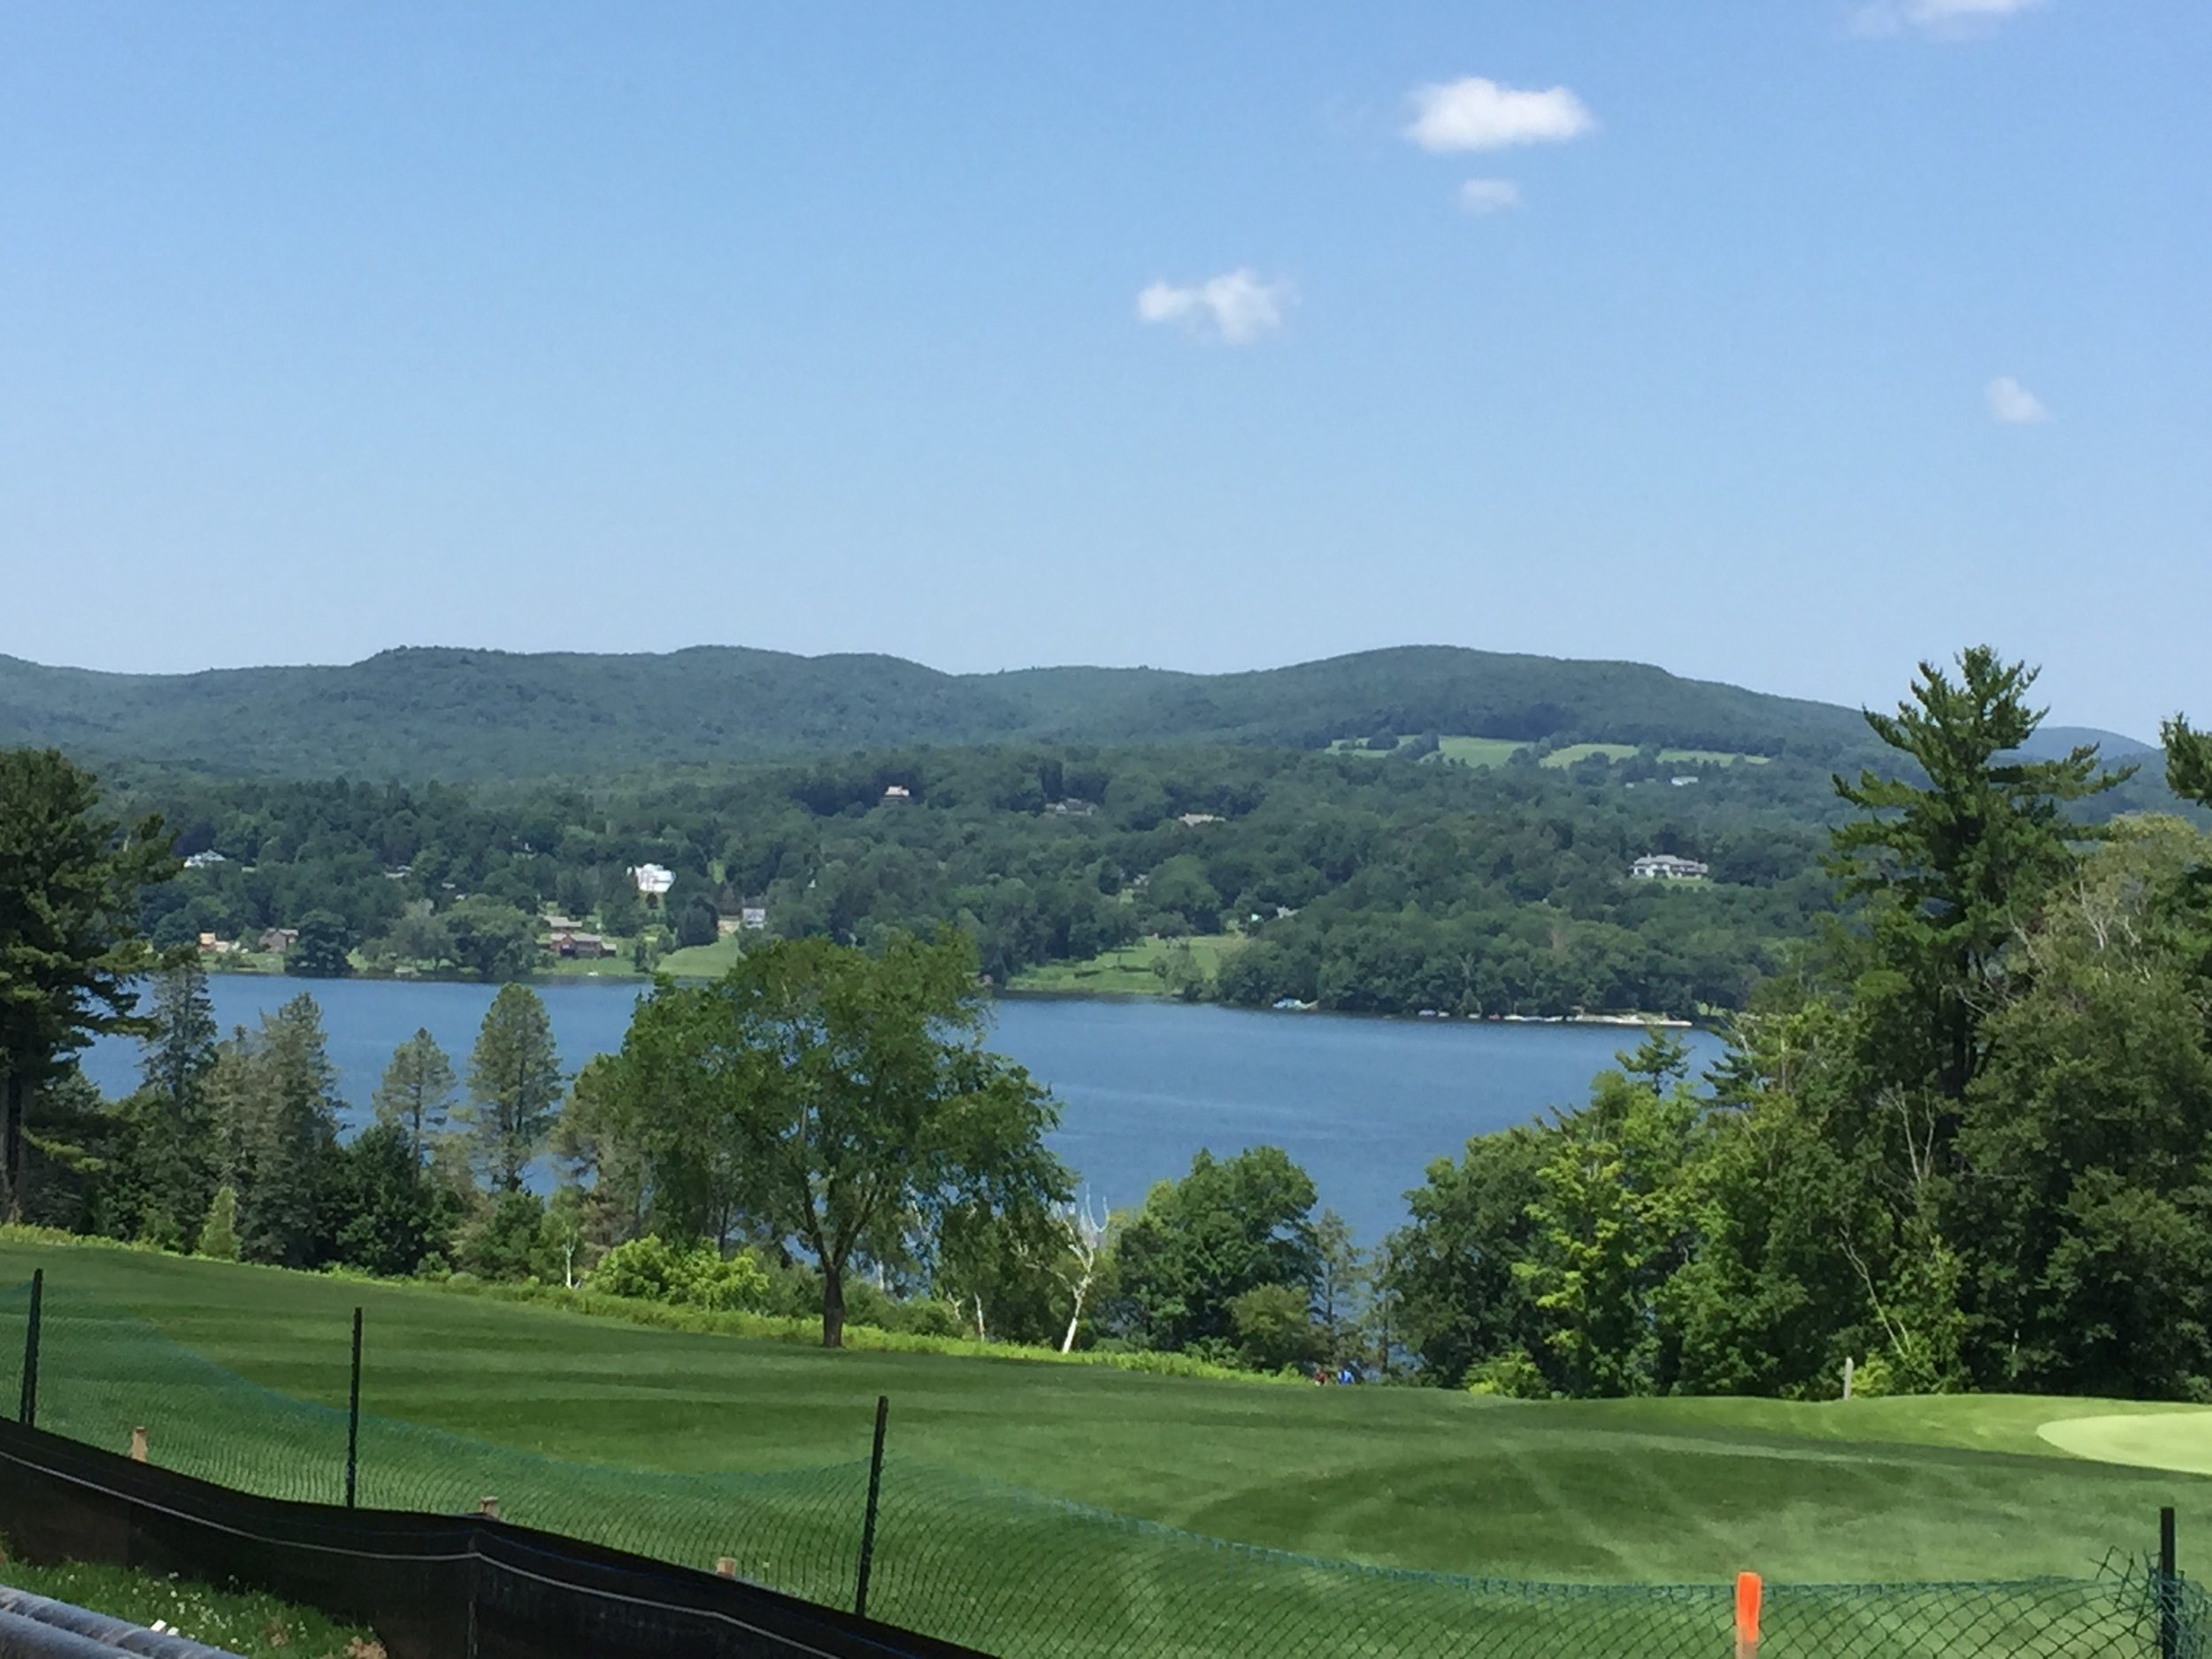 Hotchkiss campus - golf course overlooking a lake